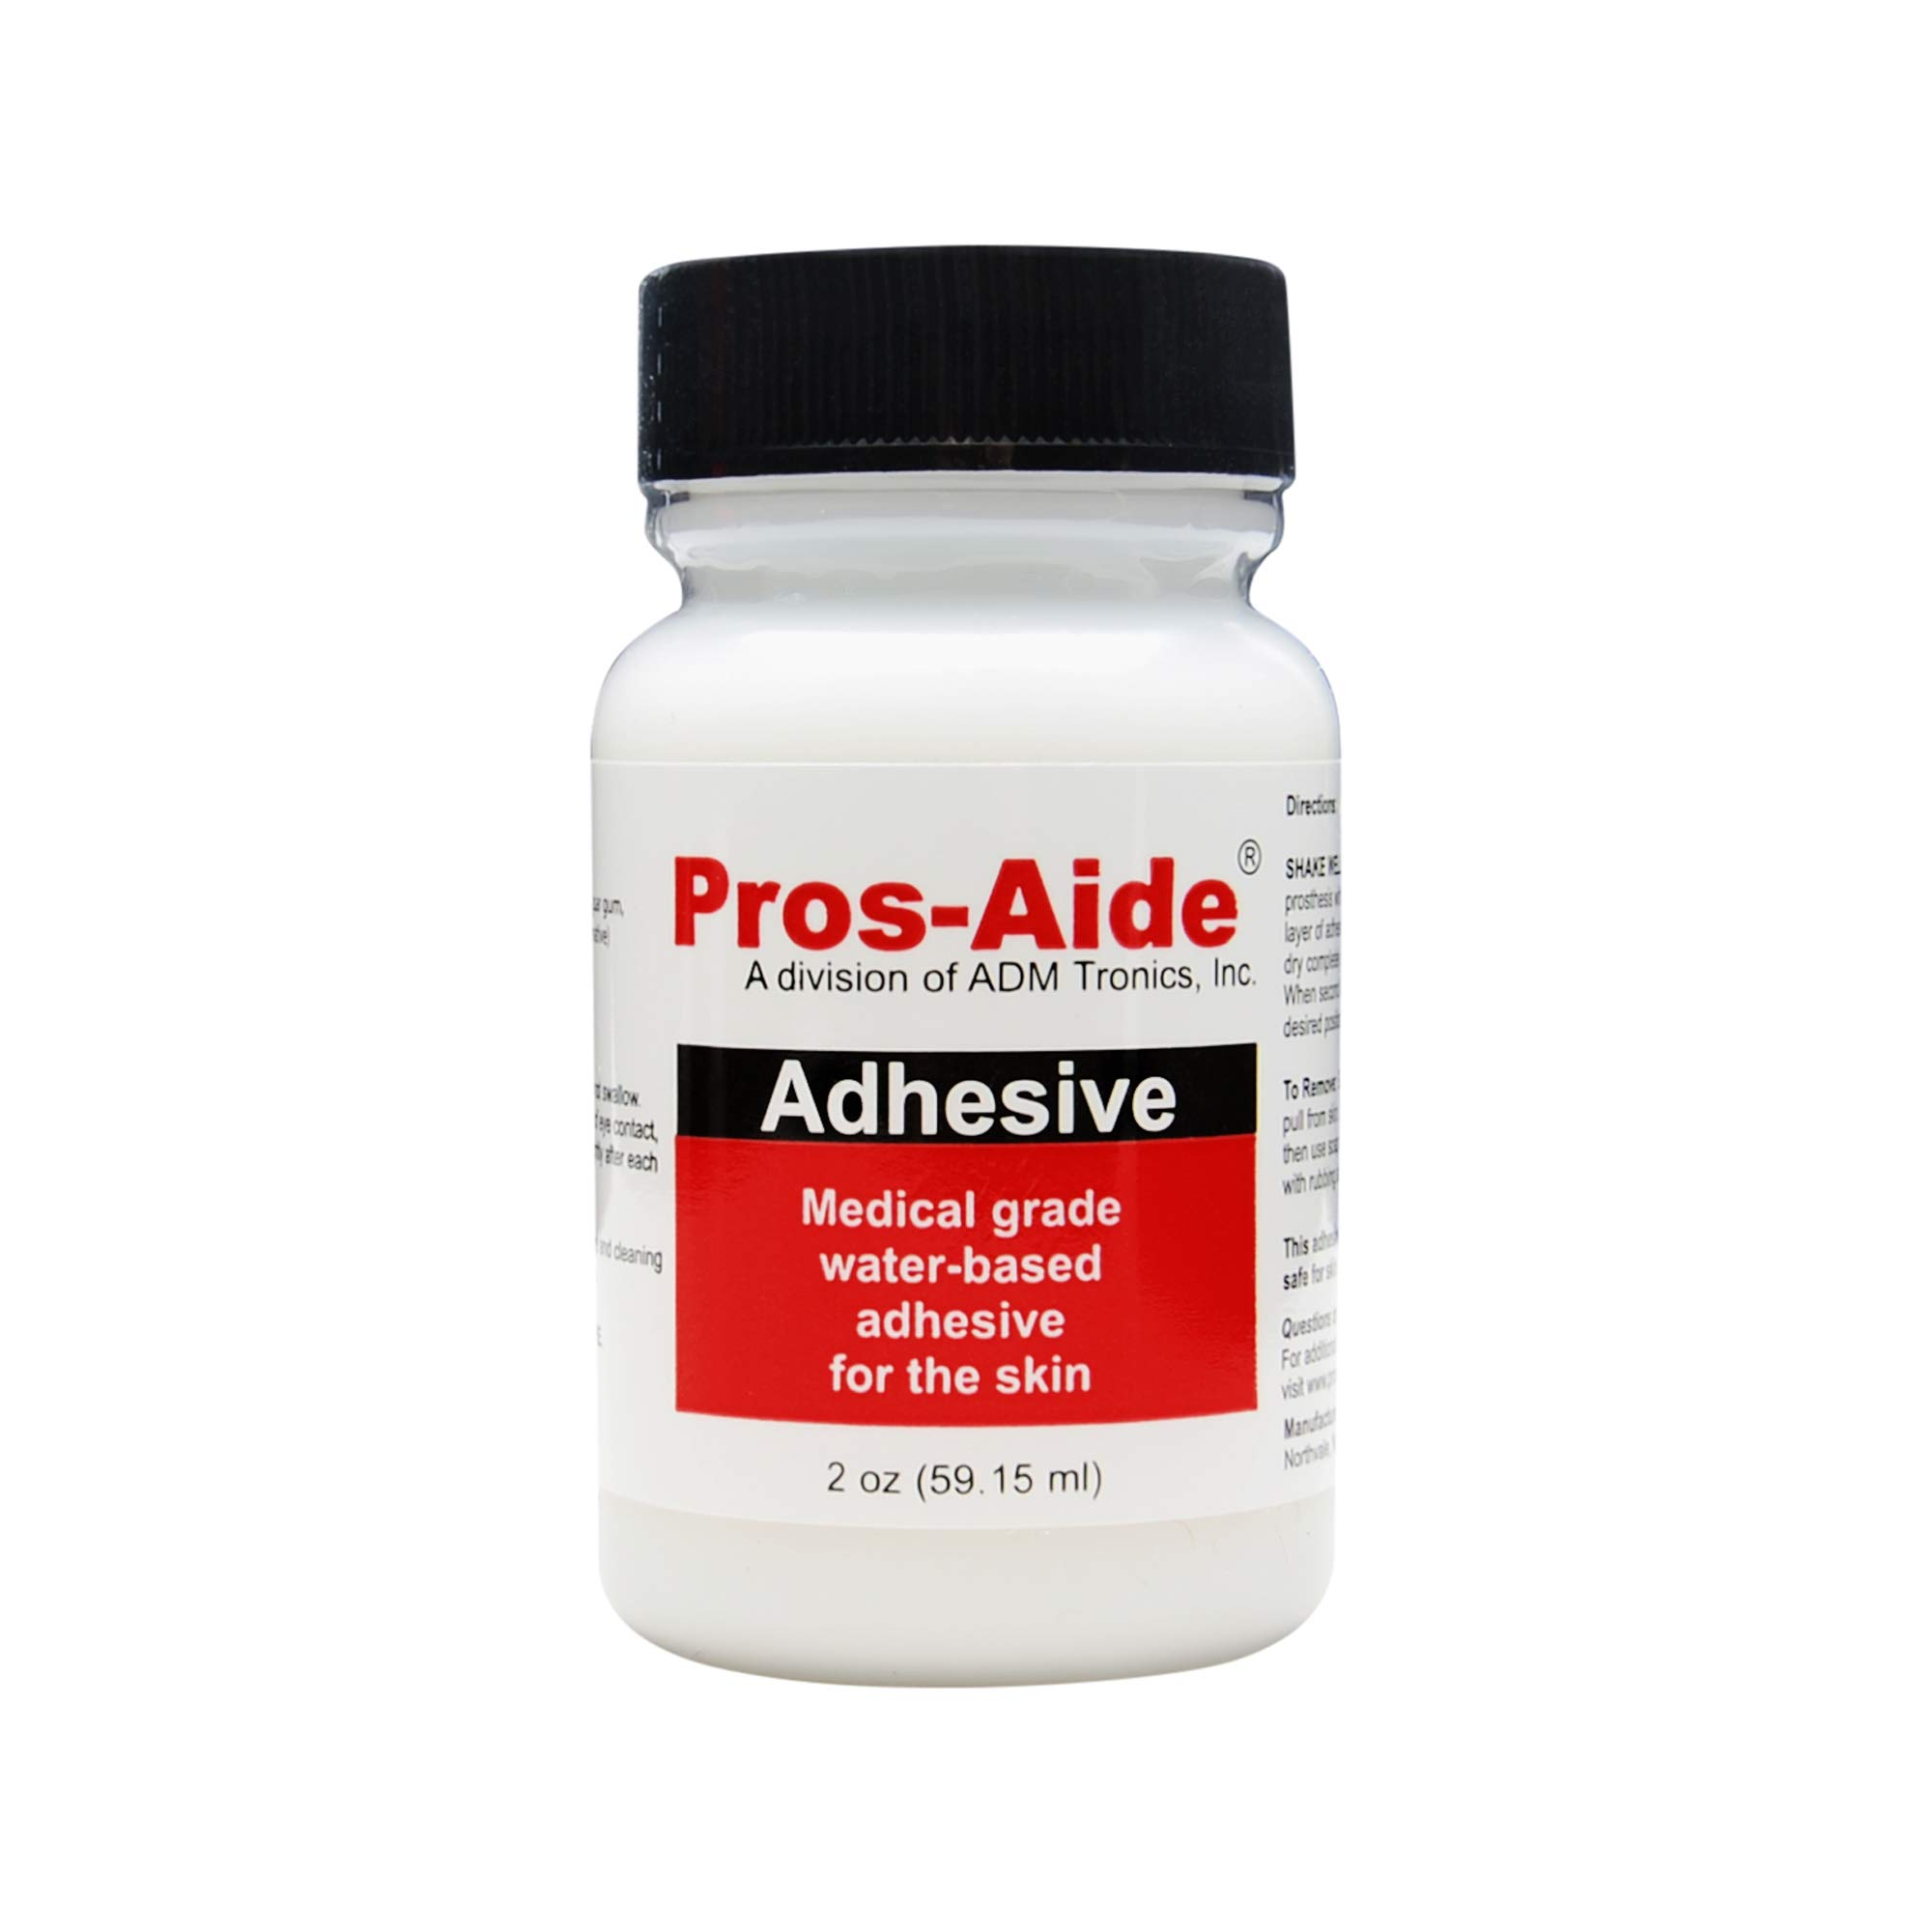 Pros-Aide Adhesive - 2oz in Leakproof Nalgene Bottle